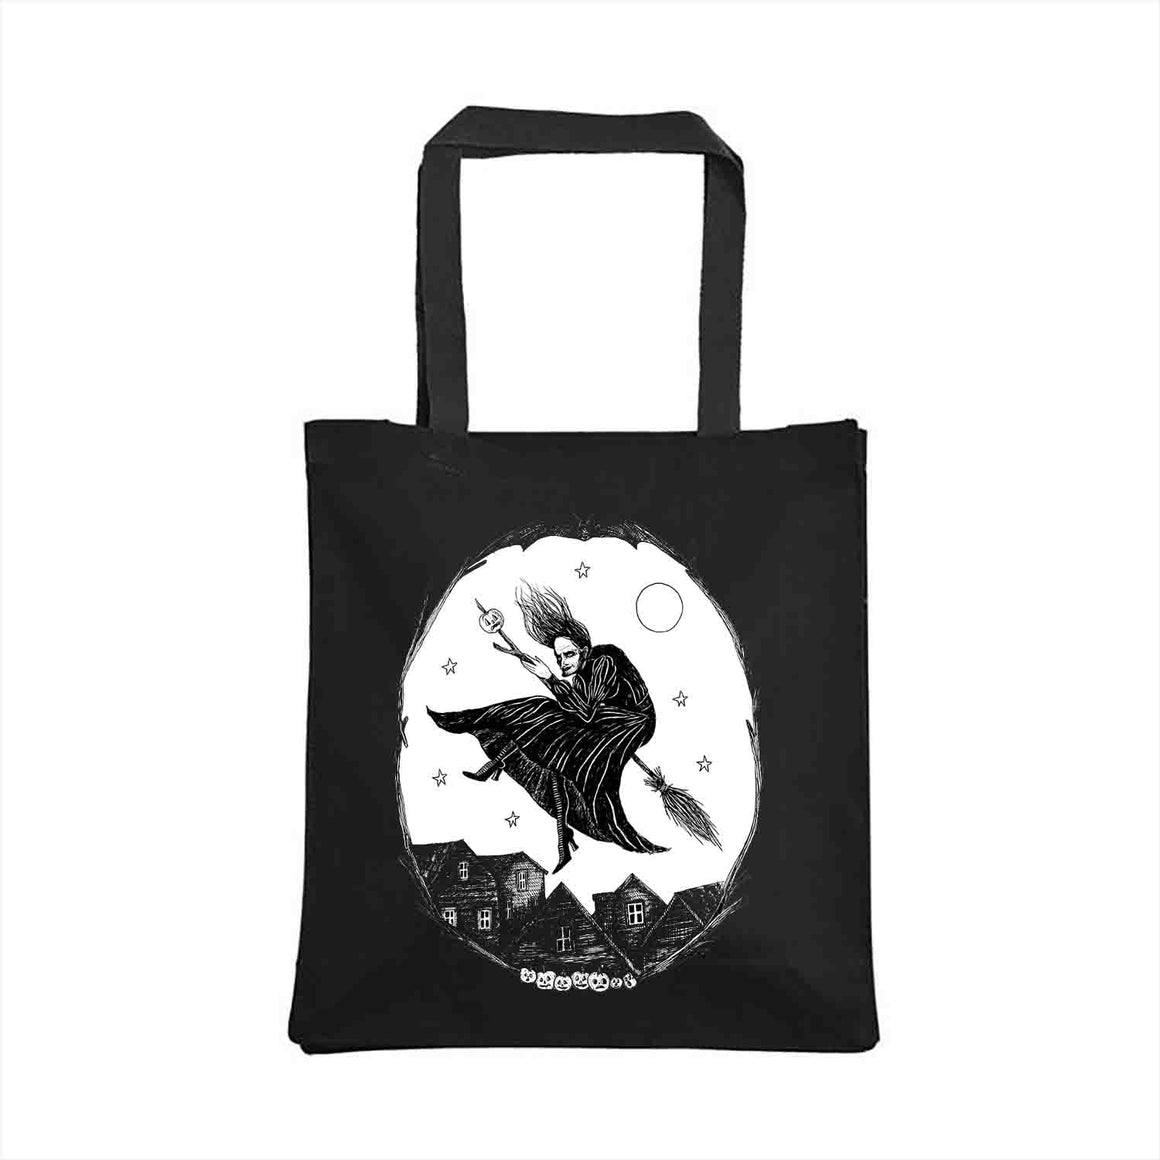 Witch Tote Bag design by Bill Crisafi